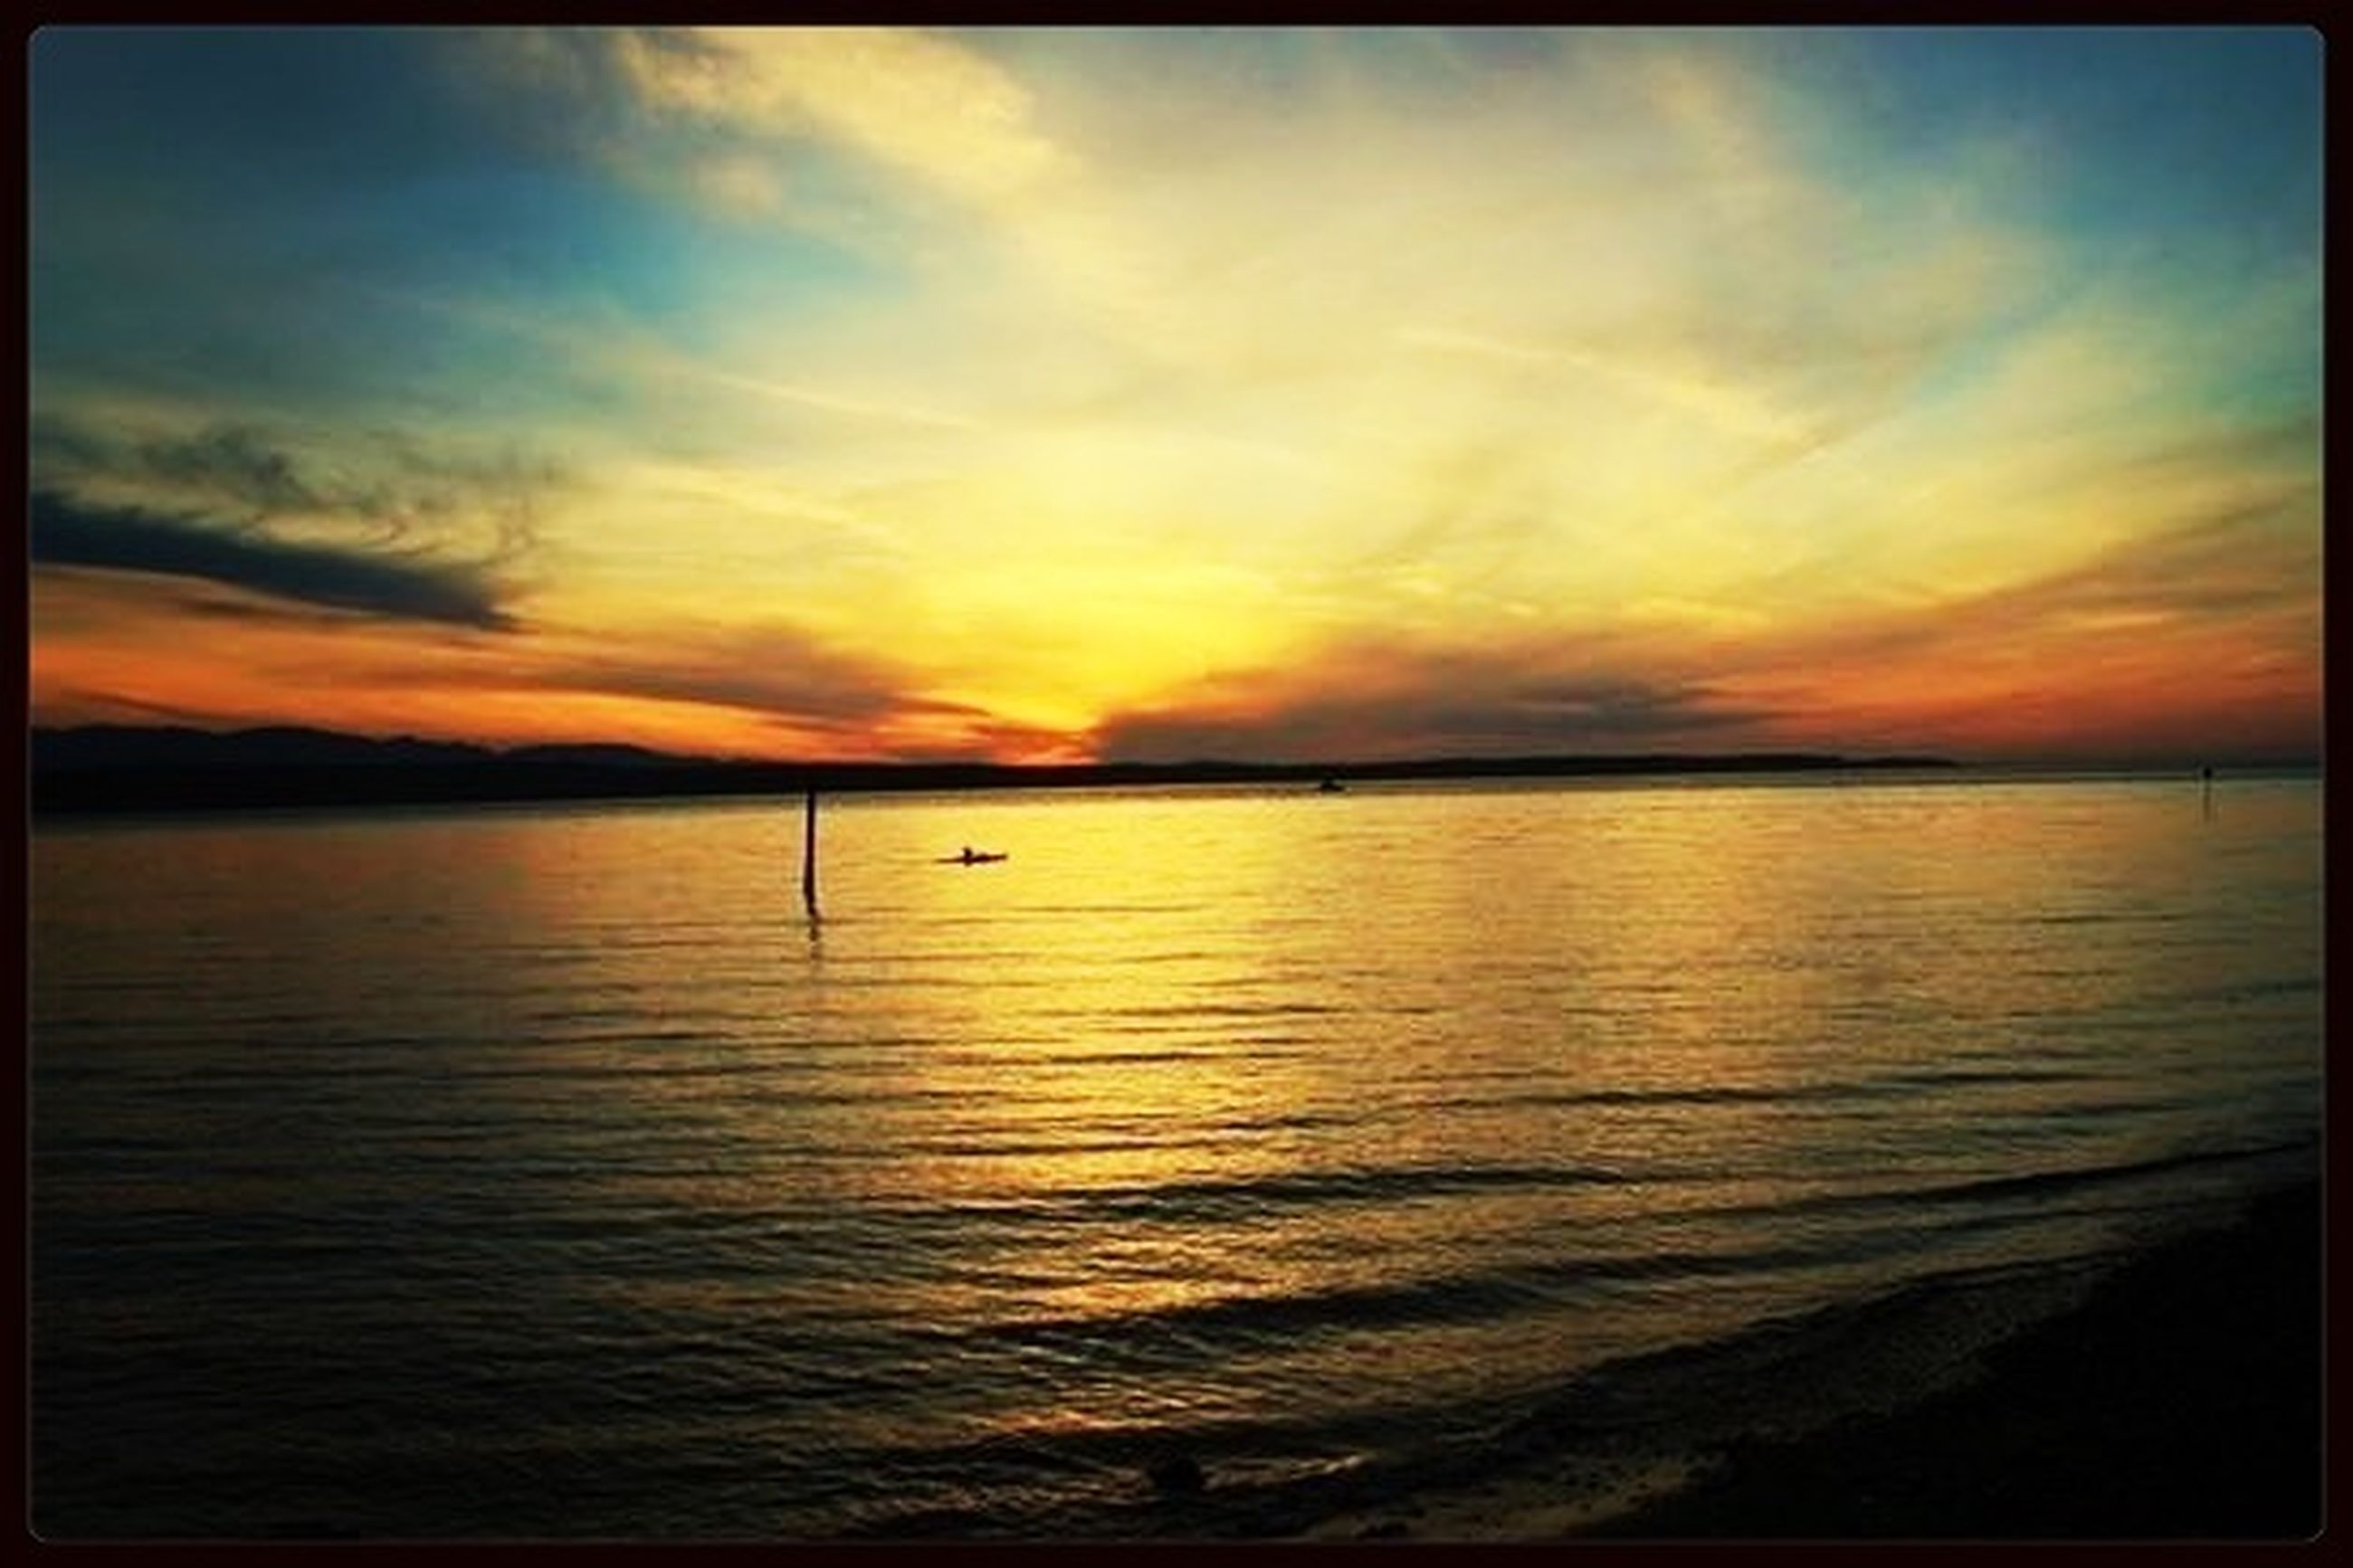 sunset, water, tranquil scene, scenics, transfer print, tranquility, beauty in nature, sky, sea, orange color, reflection, auto post production filter, idyllic, nature, cloud - sky, horizon over water, silhouette, cloud, dramatic sky, waterfront